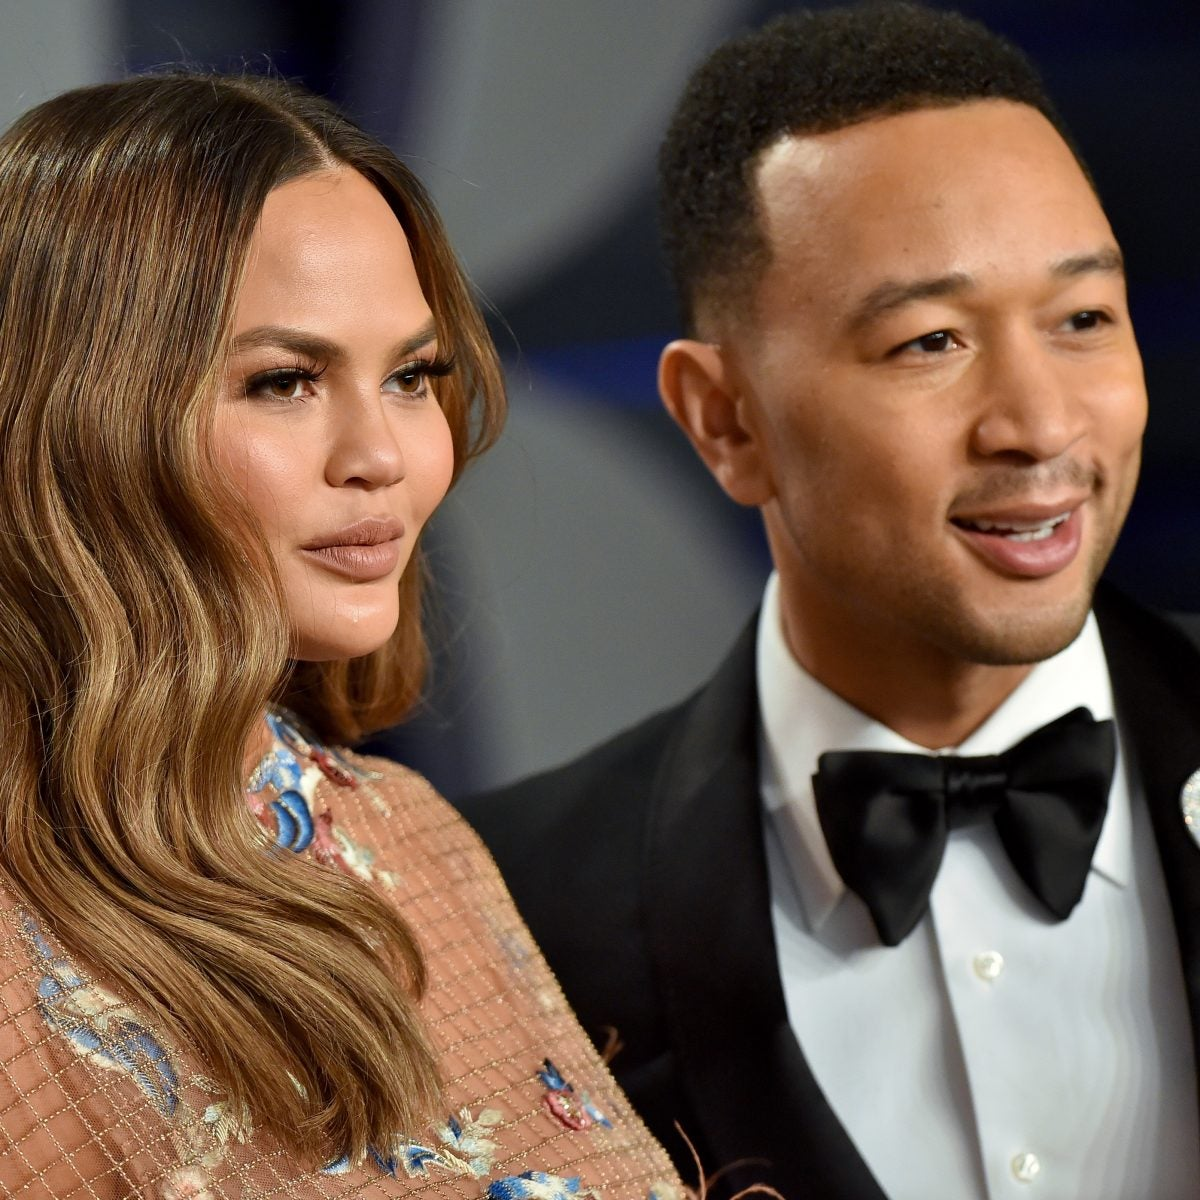 John Legend And Chrissy Teigen Are Holding On To Joy After Losing Their Son Jack